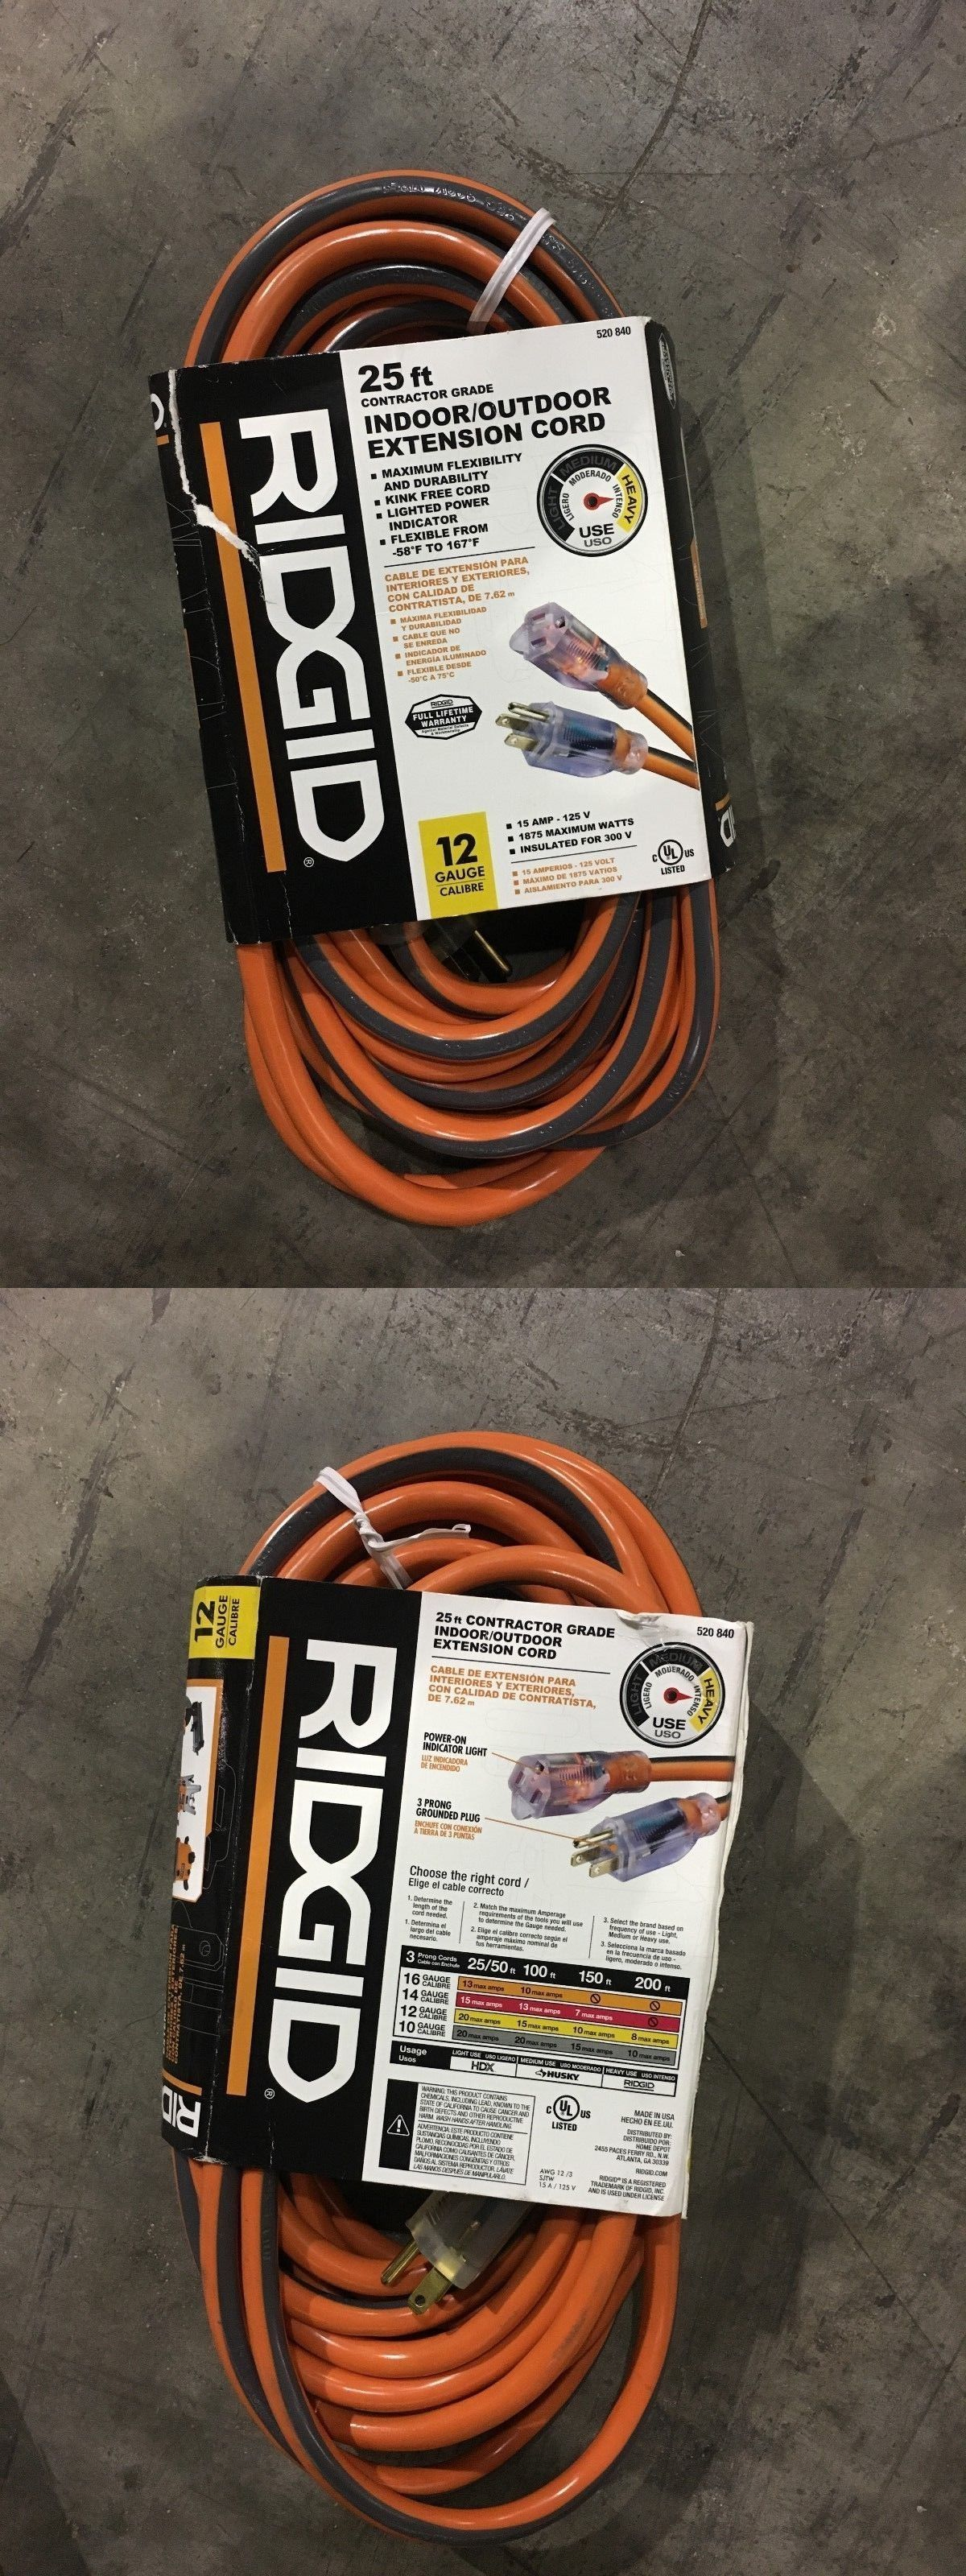 Extension cords 75577 extension cord ridgid 25 ft 12